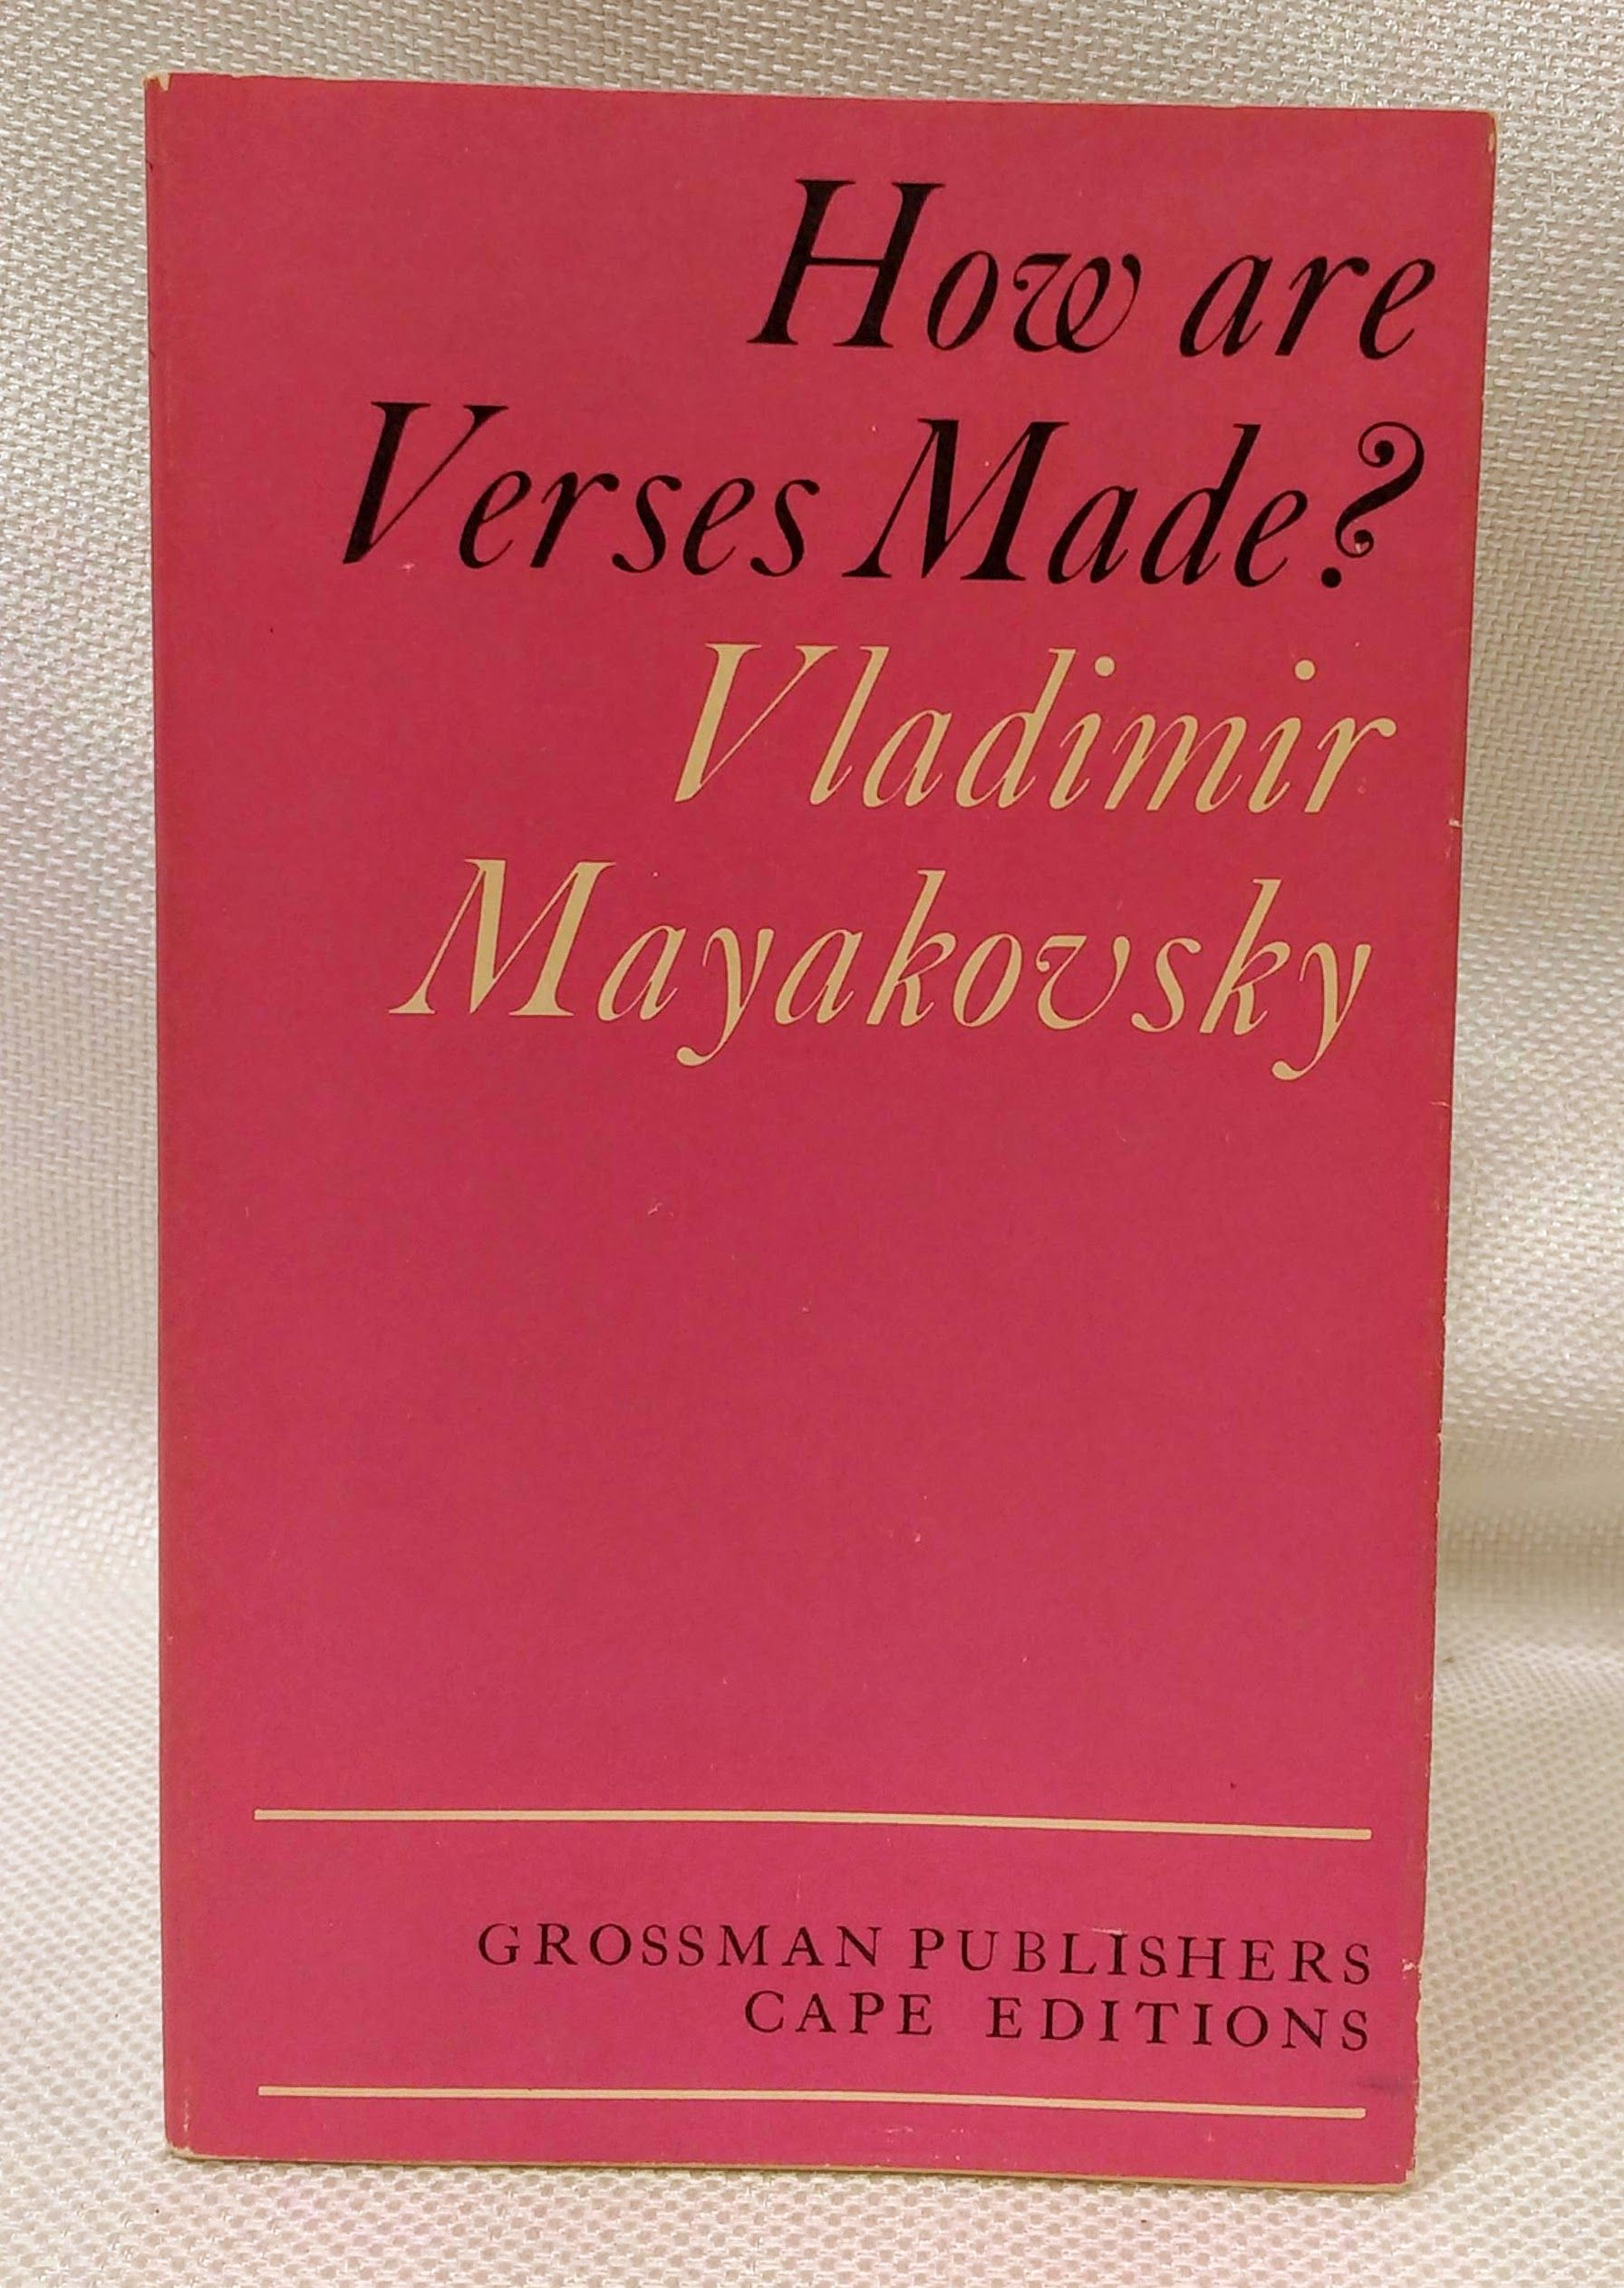 How are Verses Made? (Cape Editions) (English and Russian Edition), Mayakovsky, Vladimir; Hyde, G. M. [Translator]